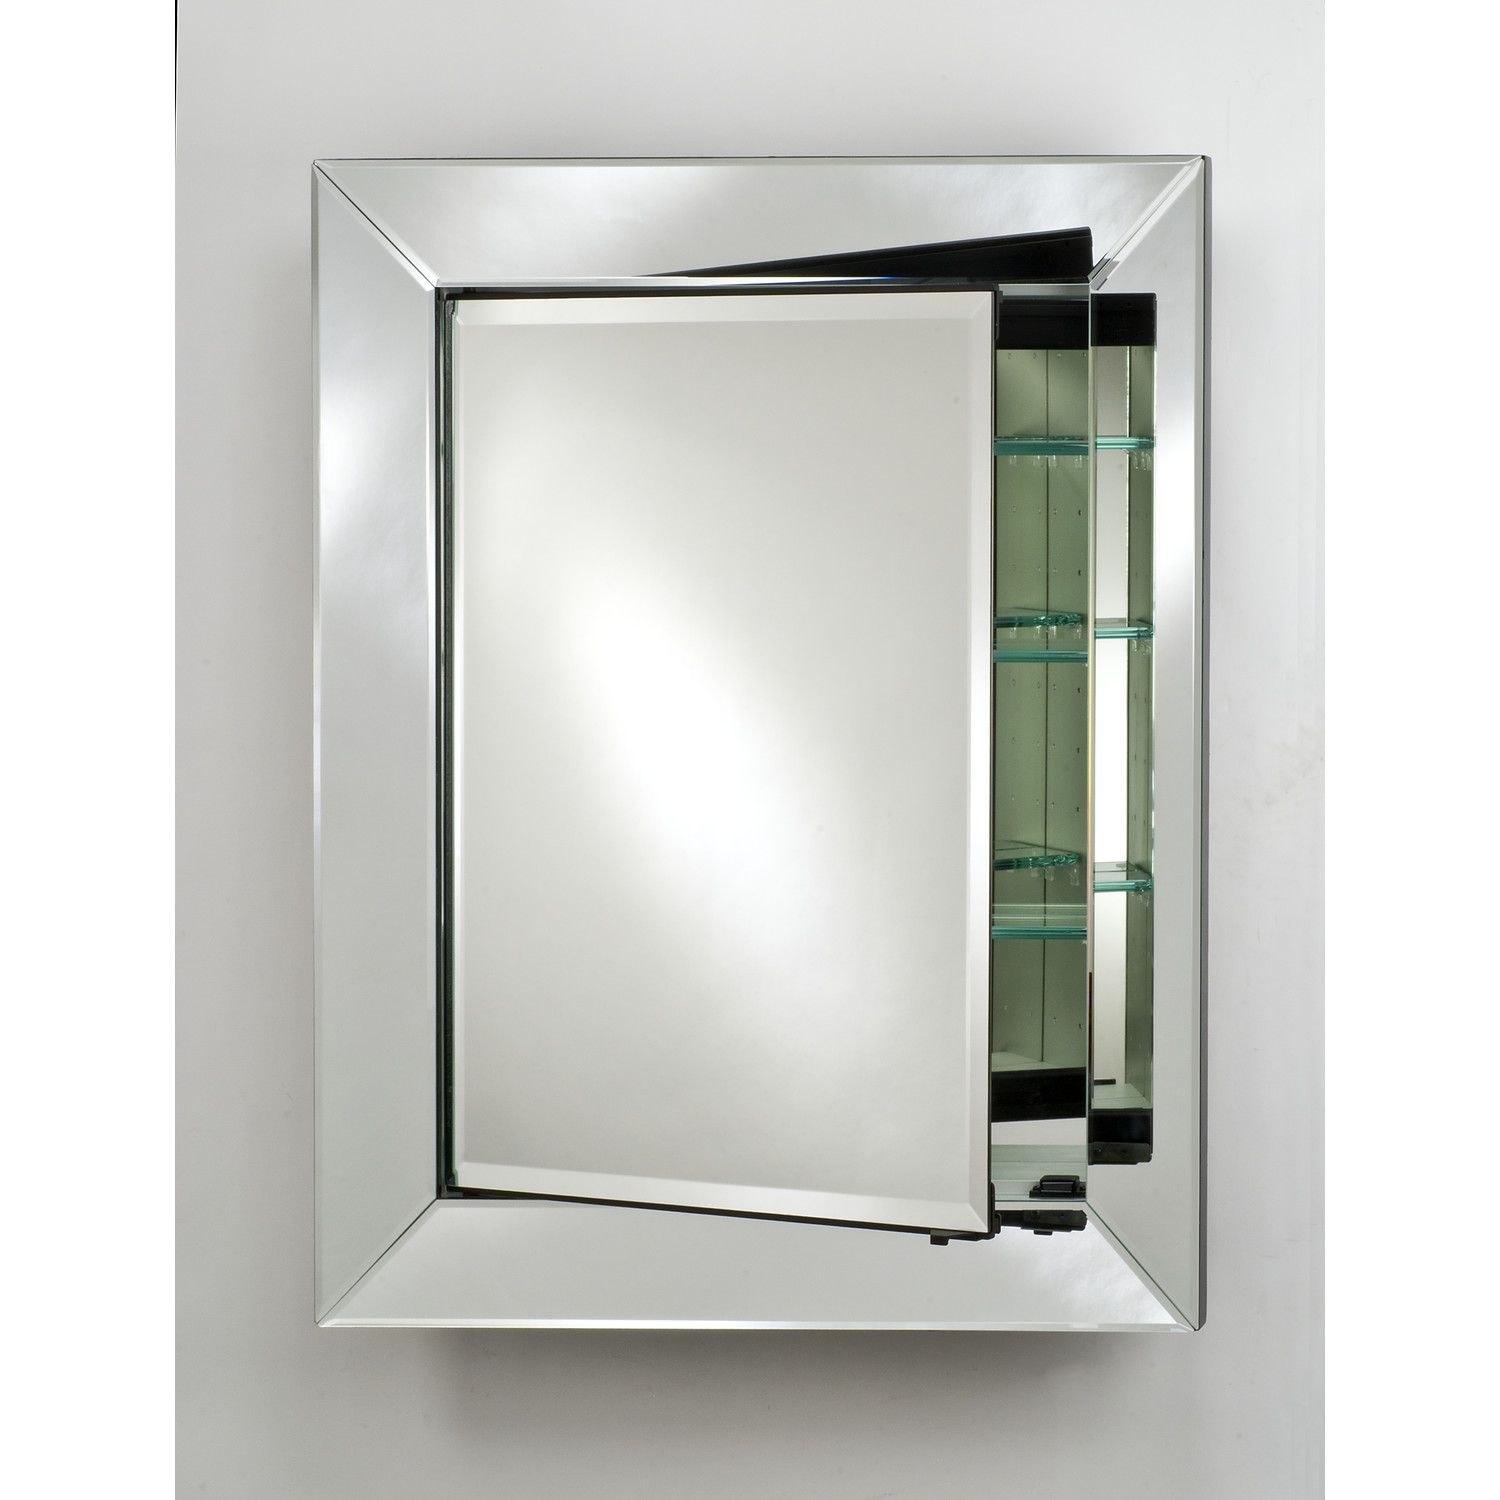 Radiance 27.25 x 33.25 Recessed Medicine Cabinet at Wayfair ...